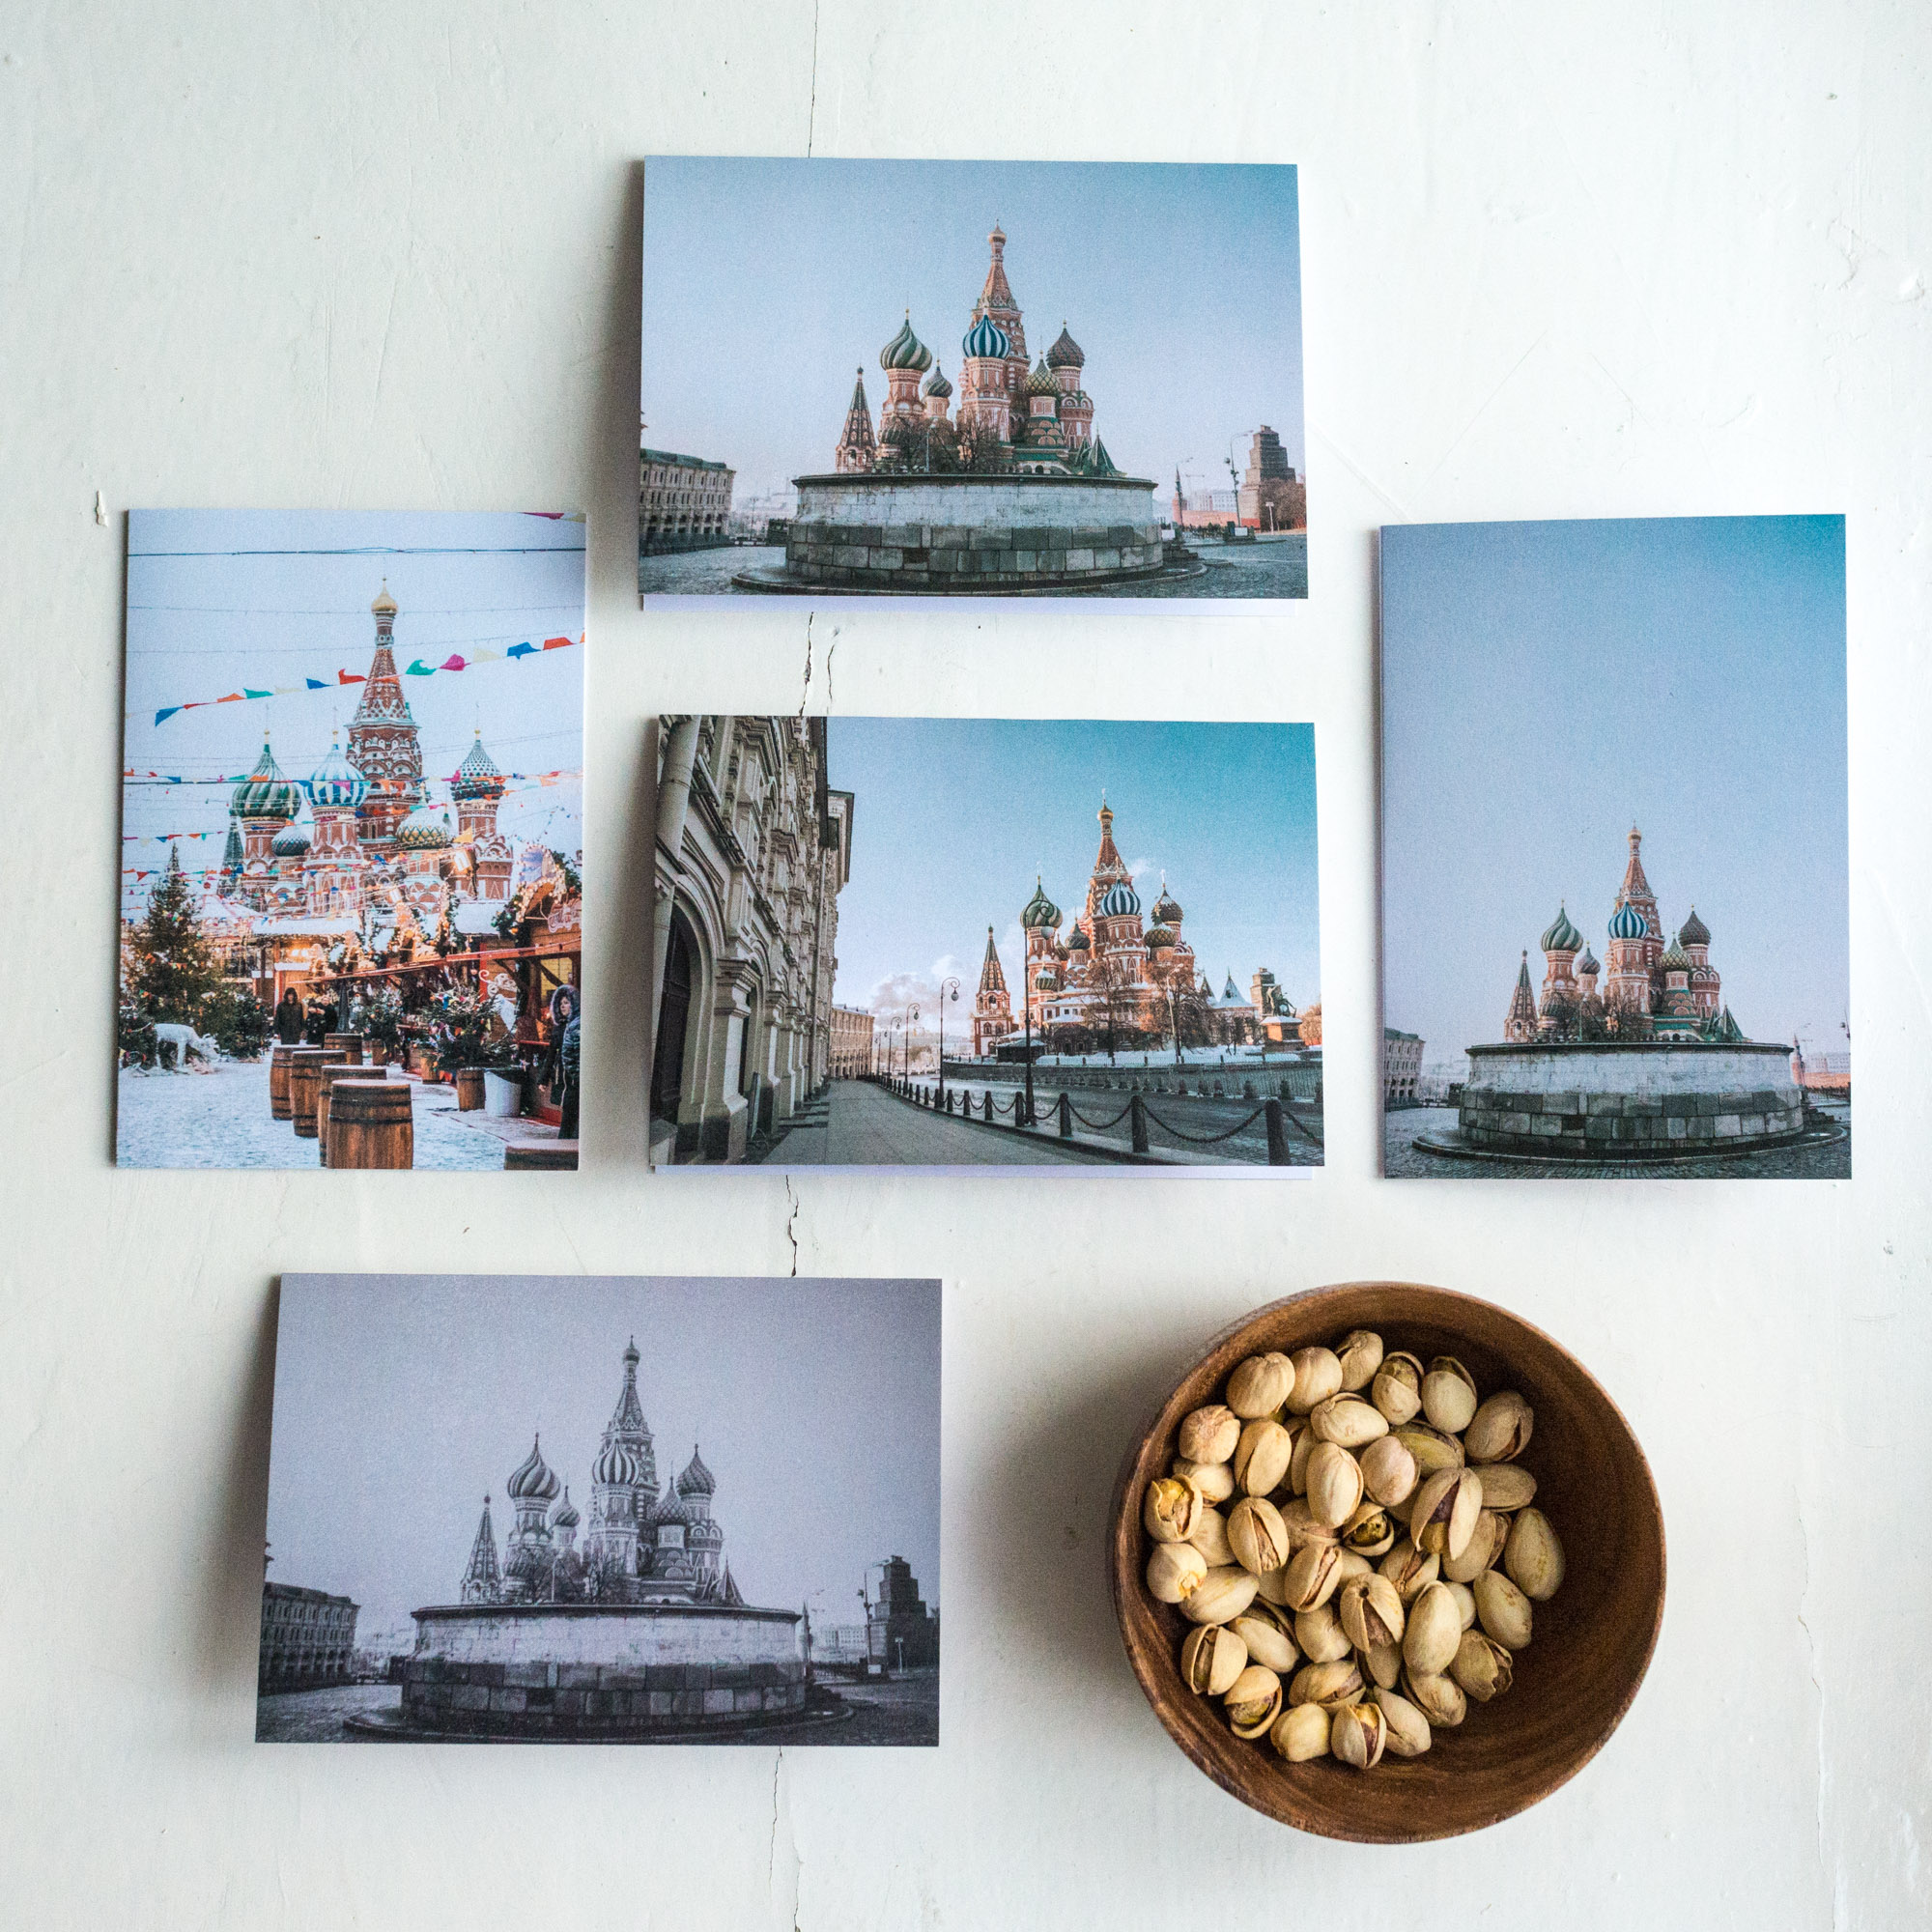 St. Basil's Card Set - Five 10 x 15 folded blank cards with envelopes500 Rub. each2 or more sets - 450 Rub. each